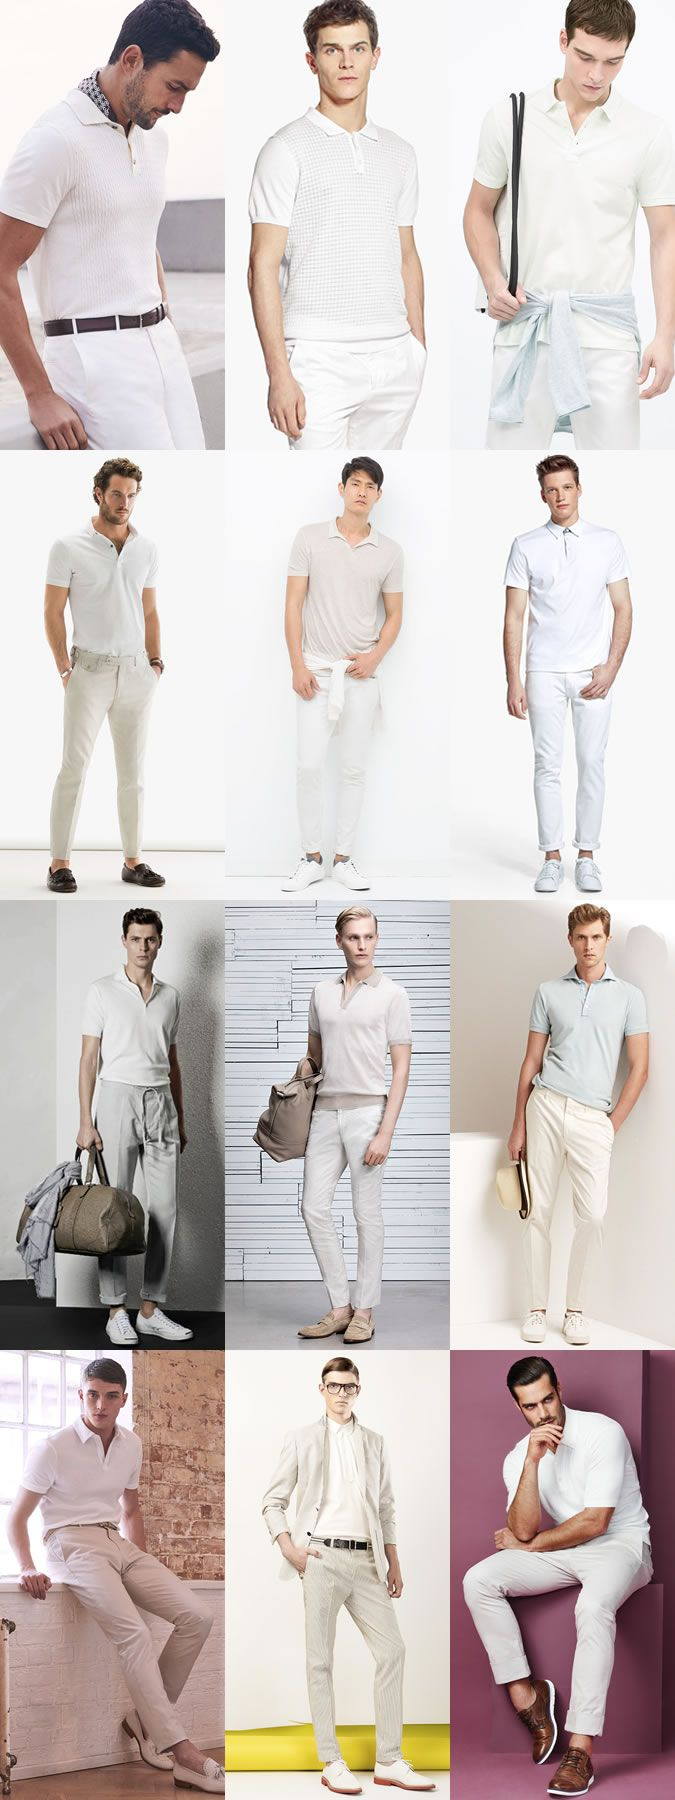 Men's All-White Polo Shirt Outfit Inspiration Lookbook